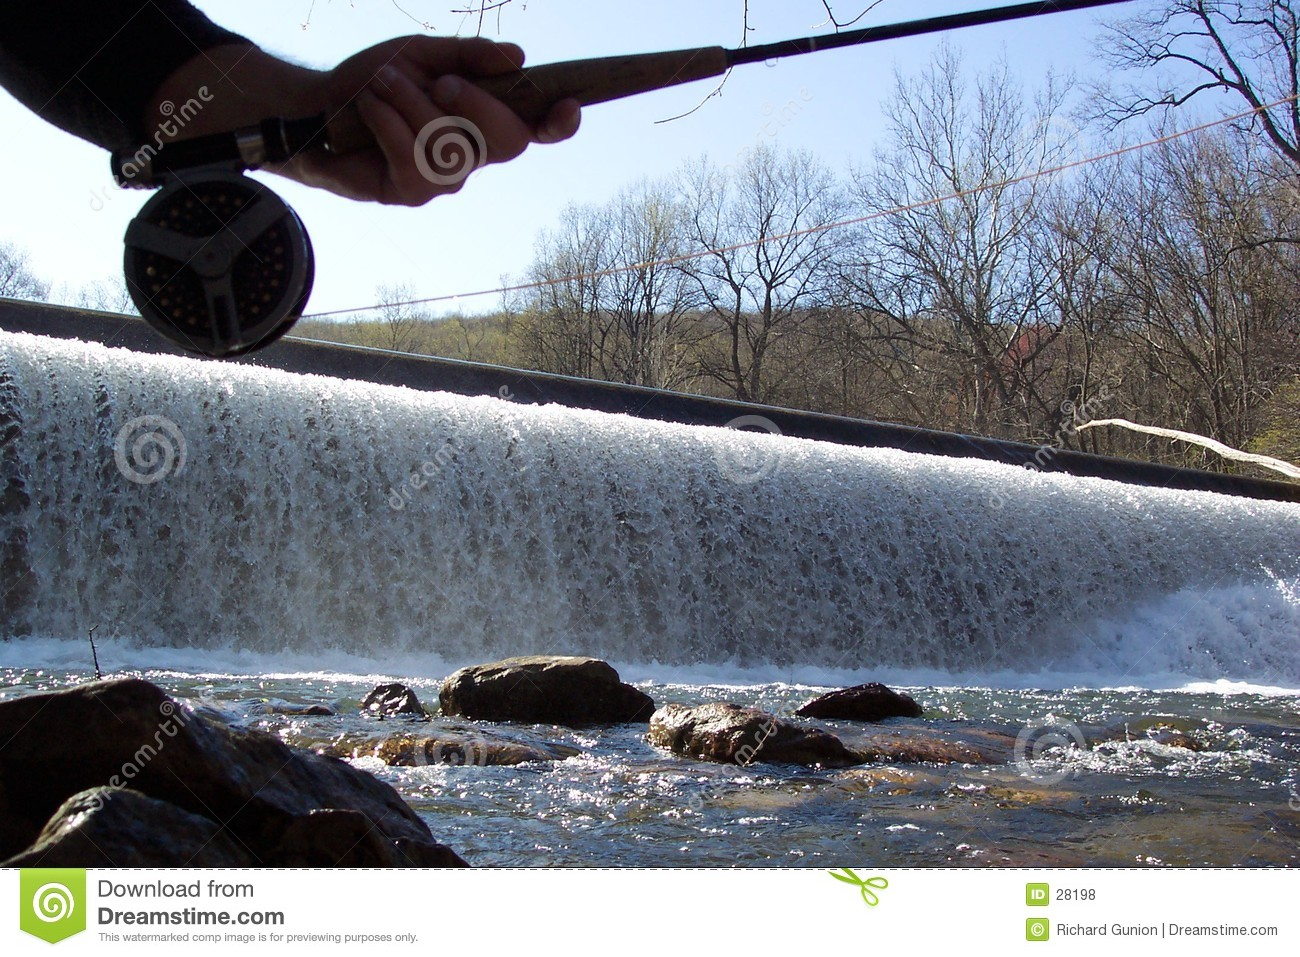 Fishing the Spillway